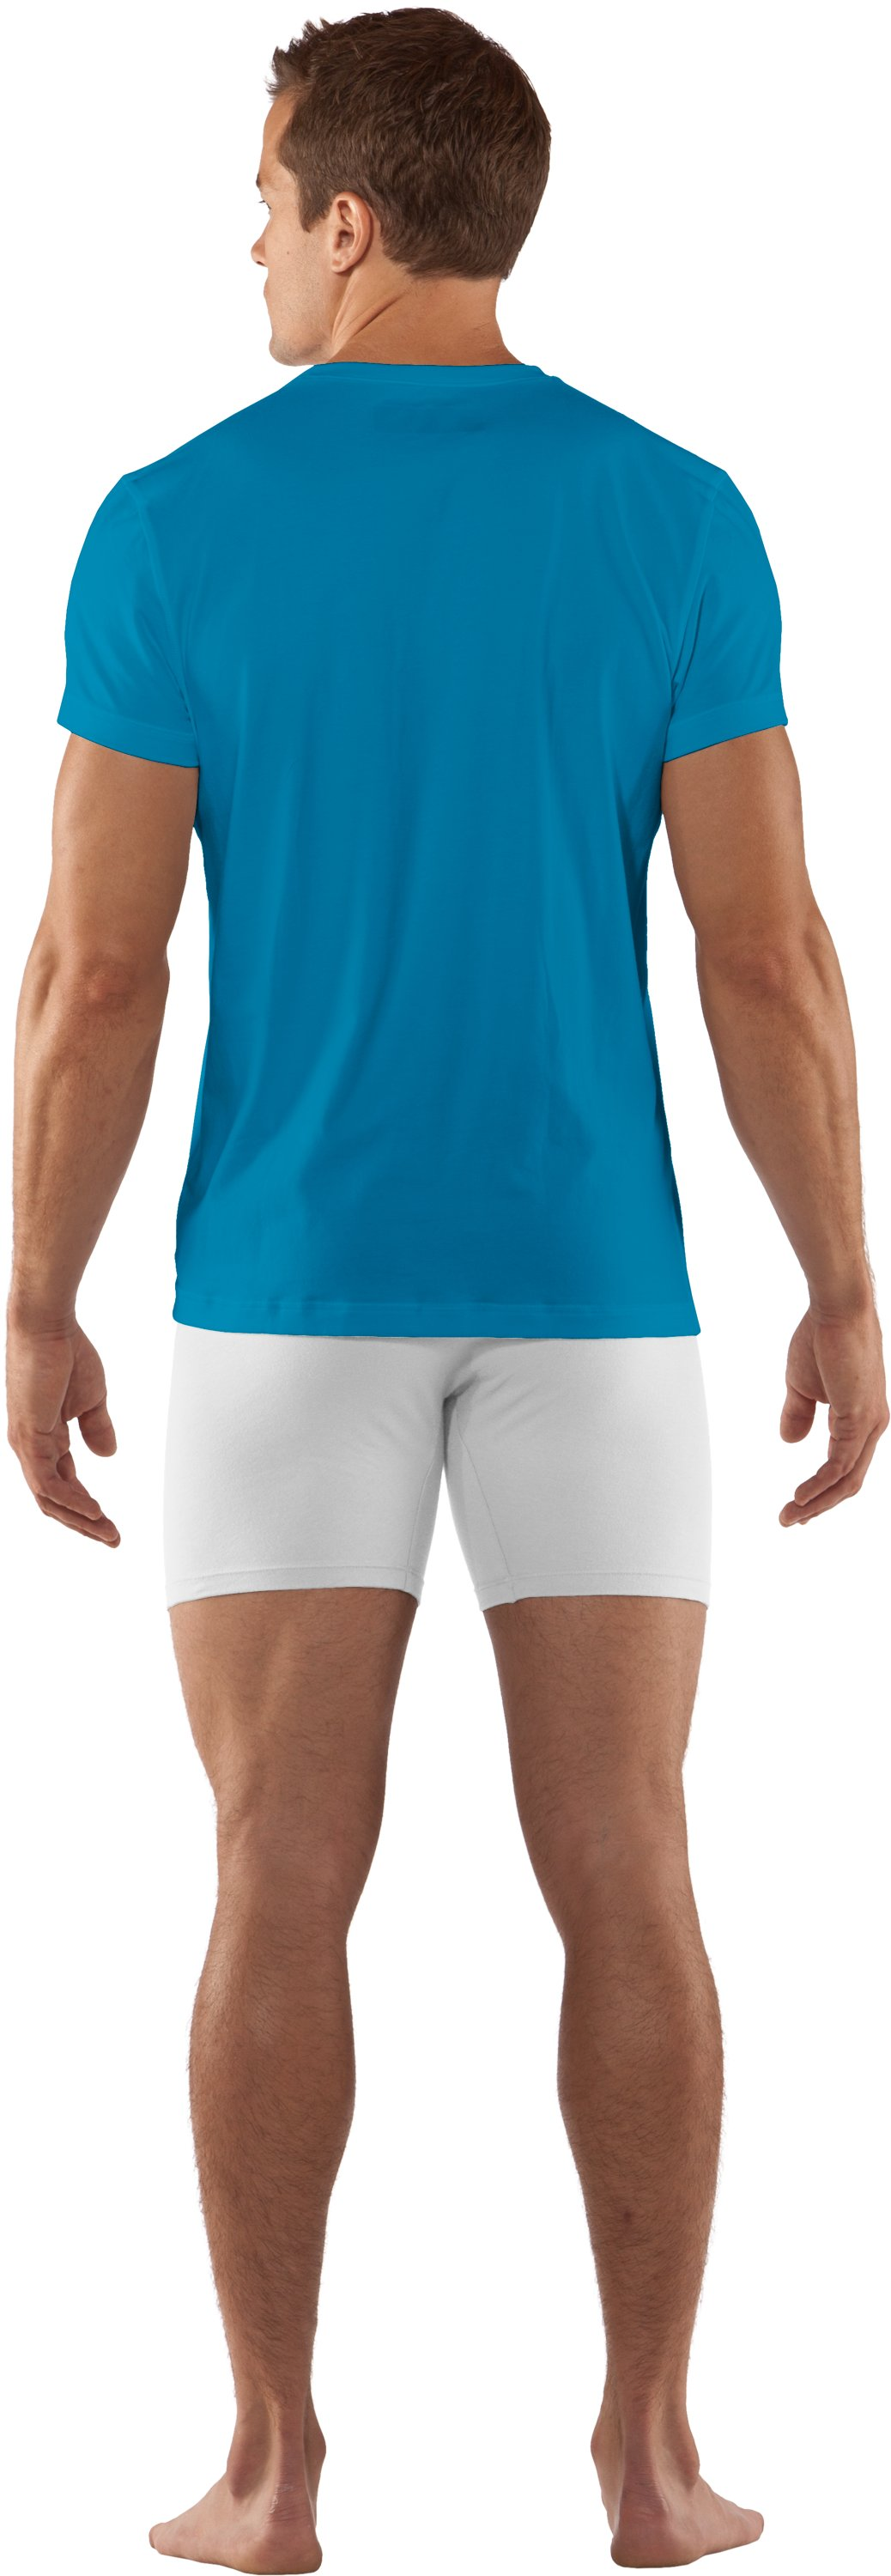 Men's Charged Cotton® Crew Undershirt, SNORKEL, Back